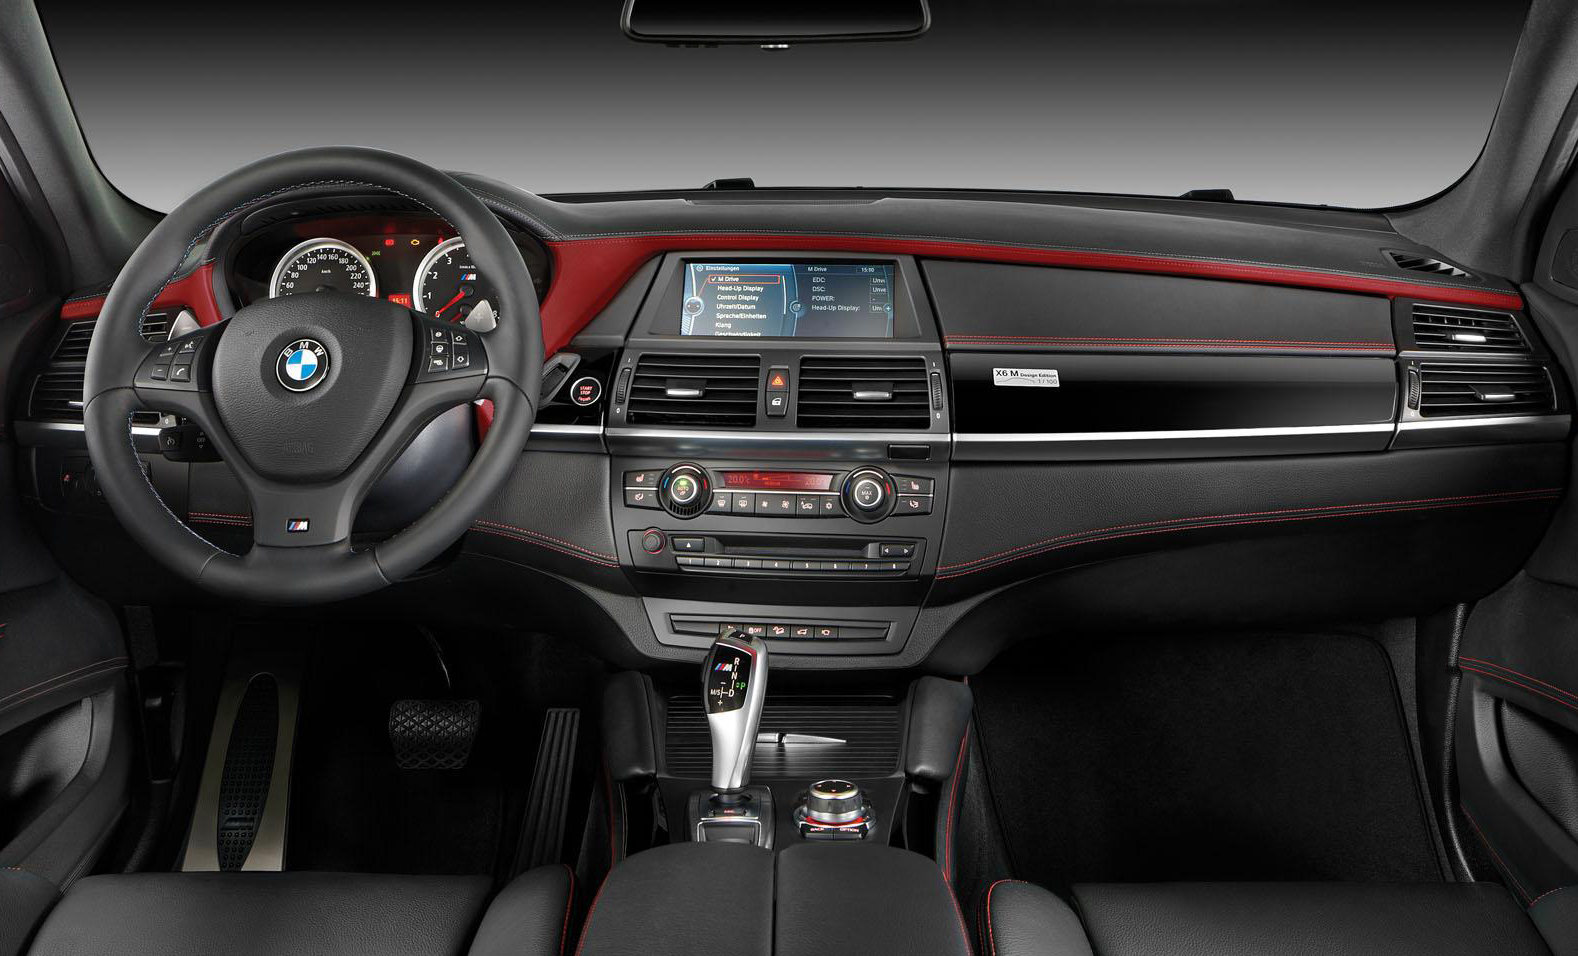 BMW X6 M Design Edition Interior 2 2014 BMW X6 M Design